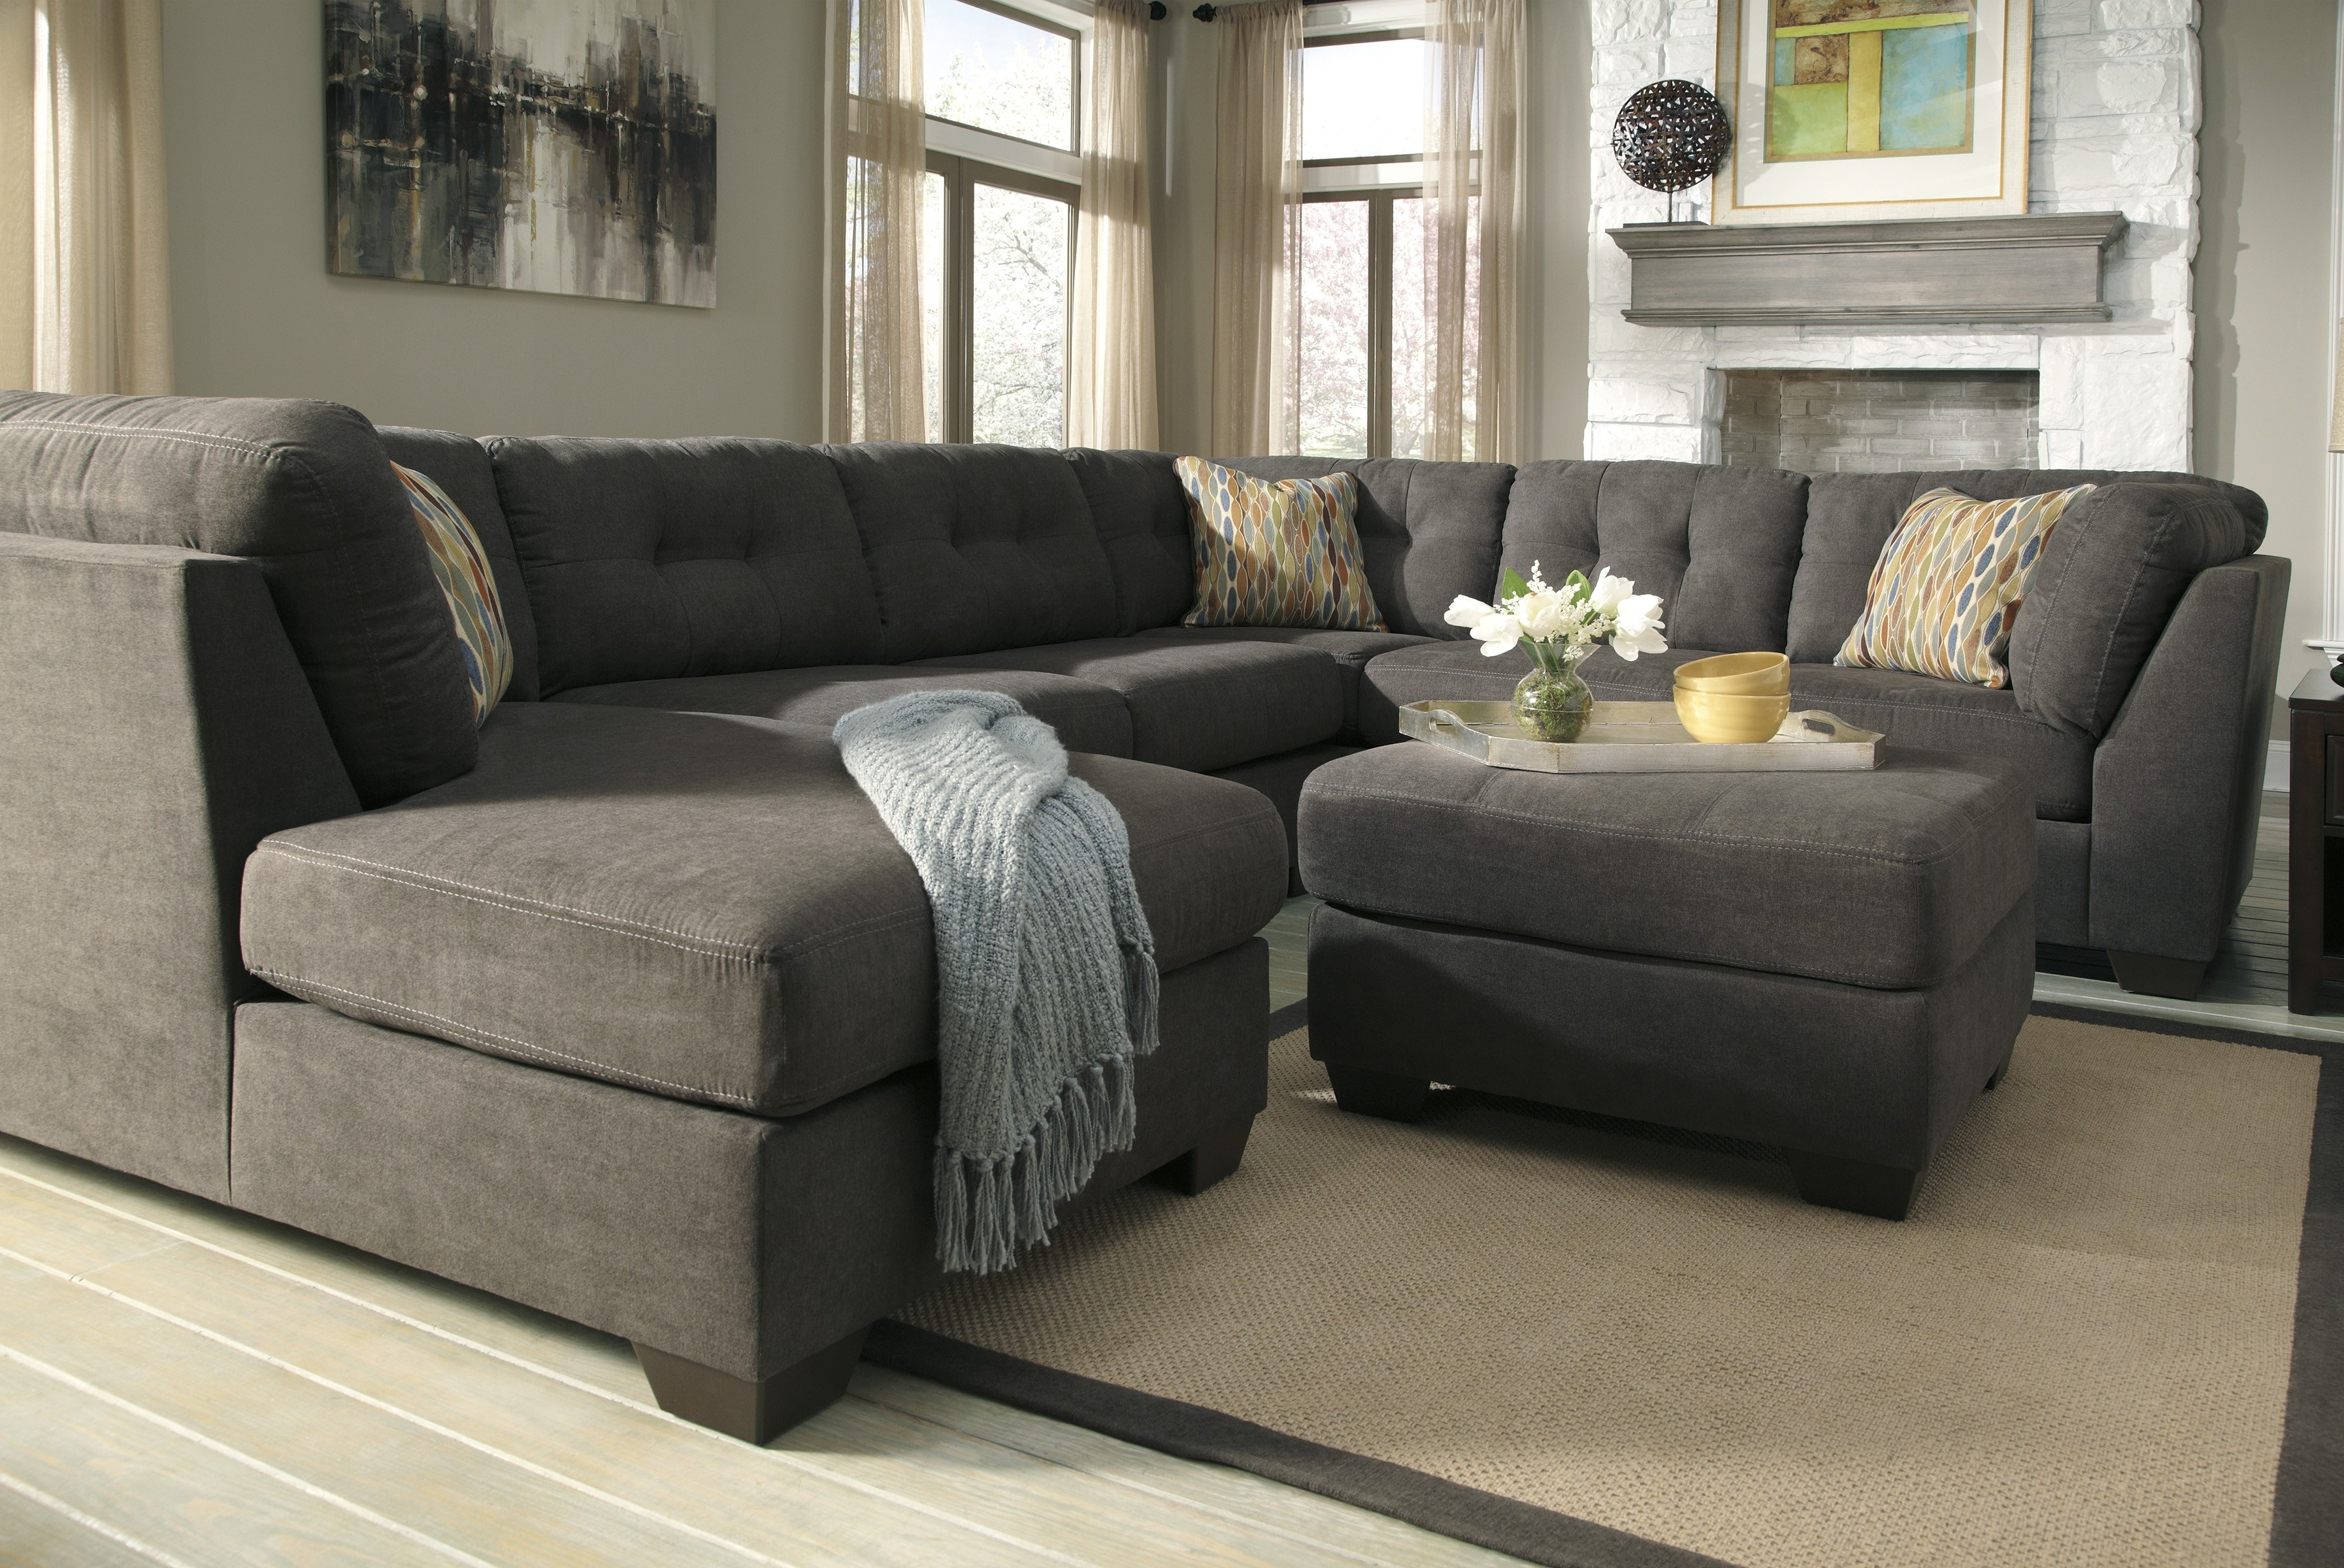 3 Piece Sectional Sleeper Sofas In Current Ashley Furniture Sectional Couch Grey Sleeper Sofa Sectional (View 1 of 15)